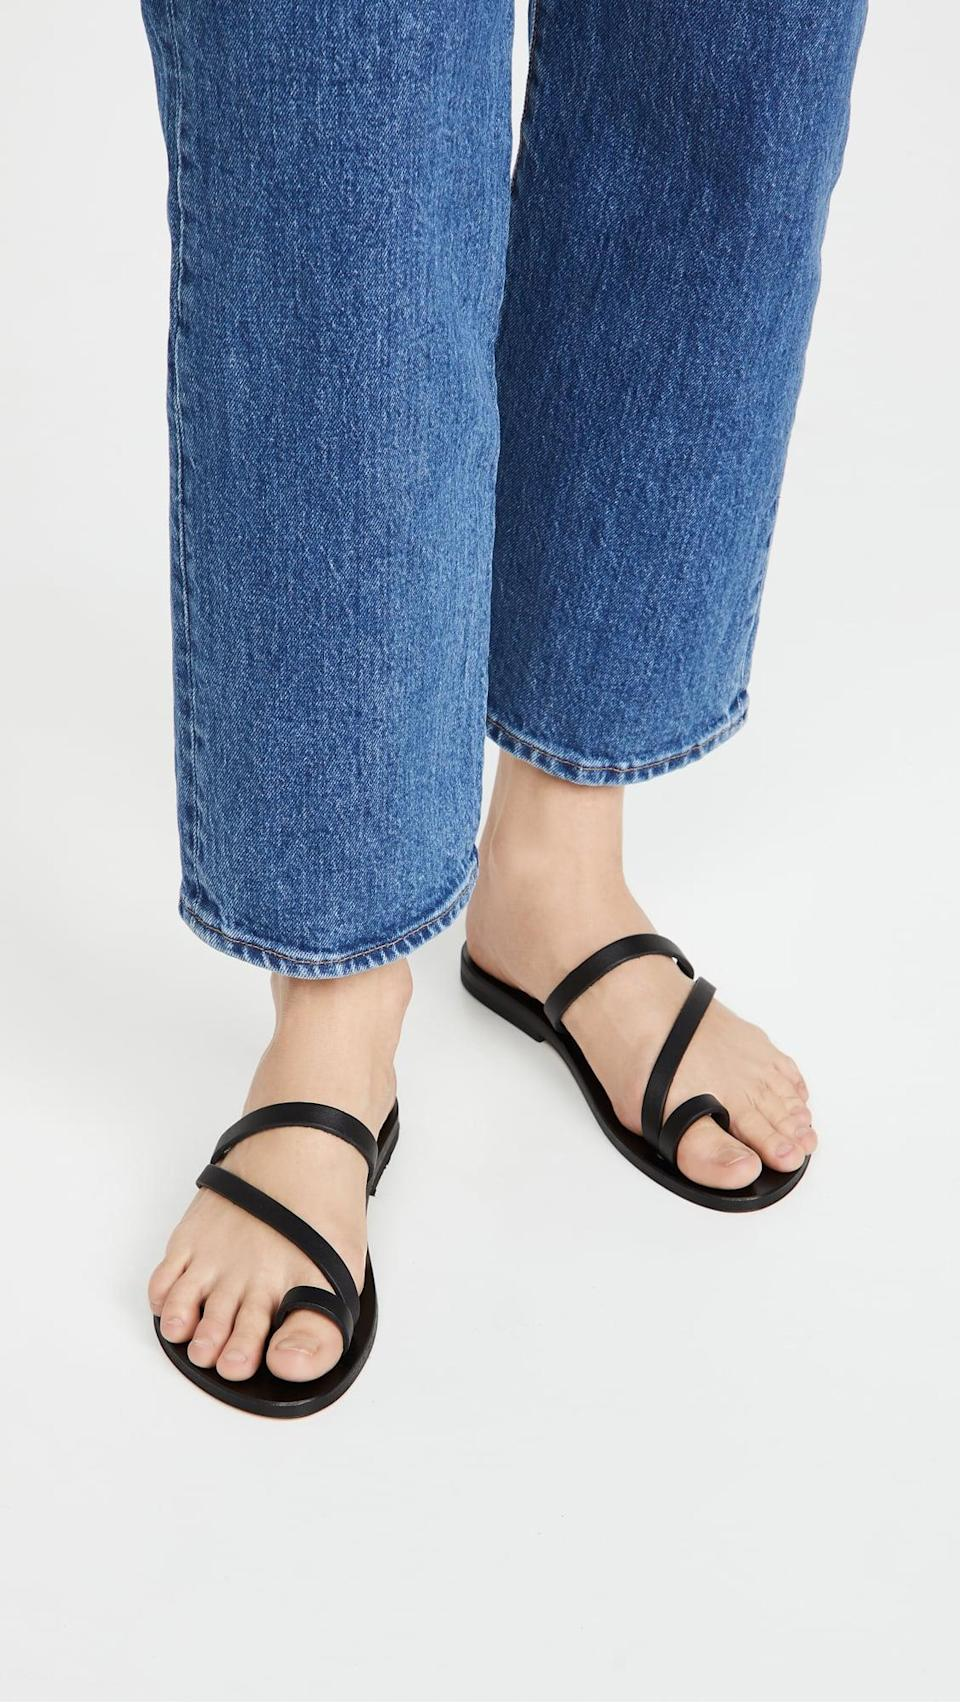 <p>Everyone needs a great black sandal in their life, and these <span>K. Jacques Bolzano Toe Ring Sandals</span> ($270) have always been staples for us.</p>